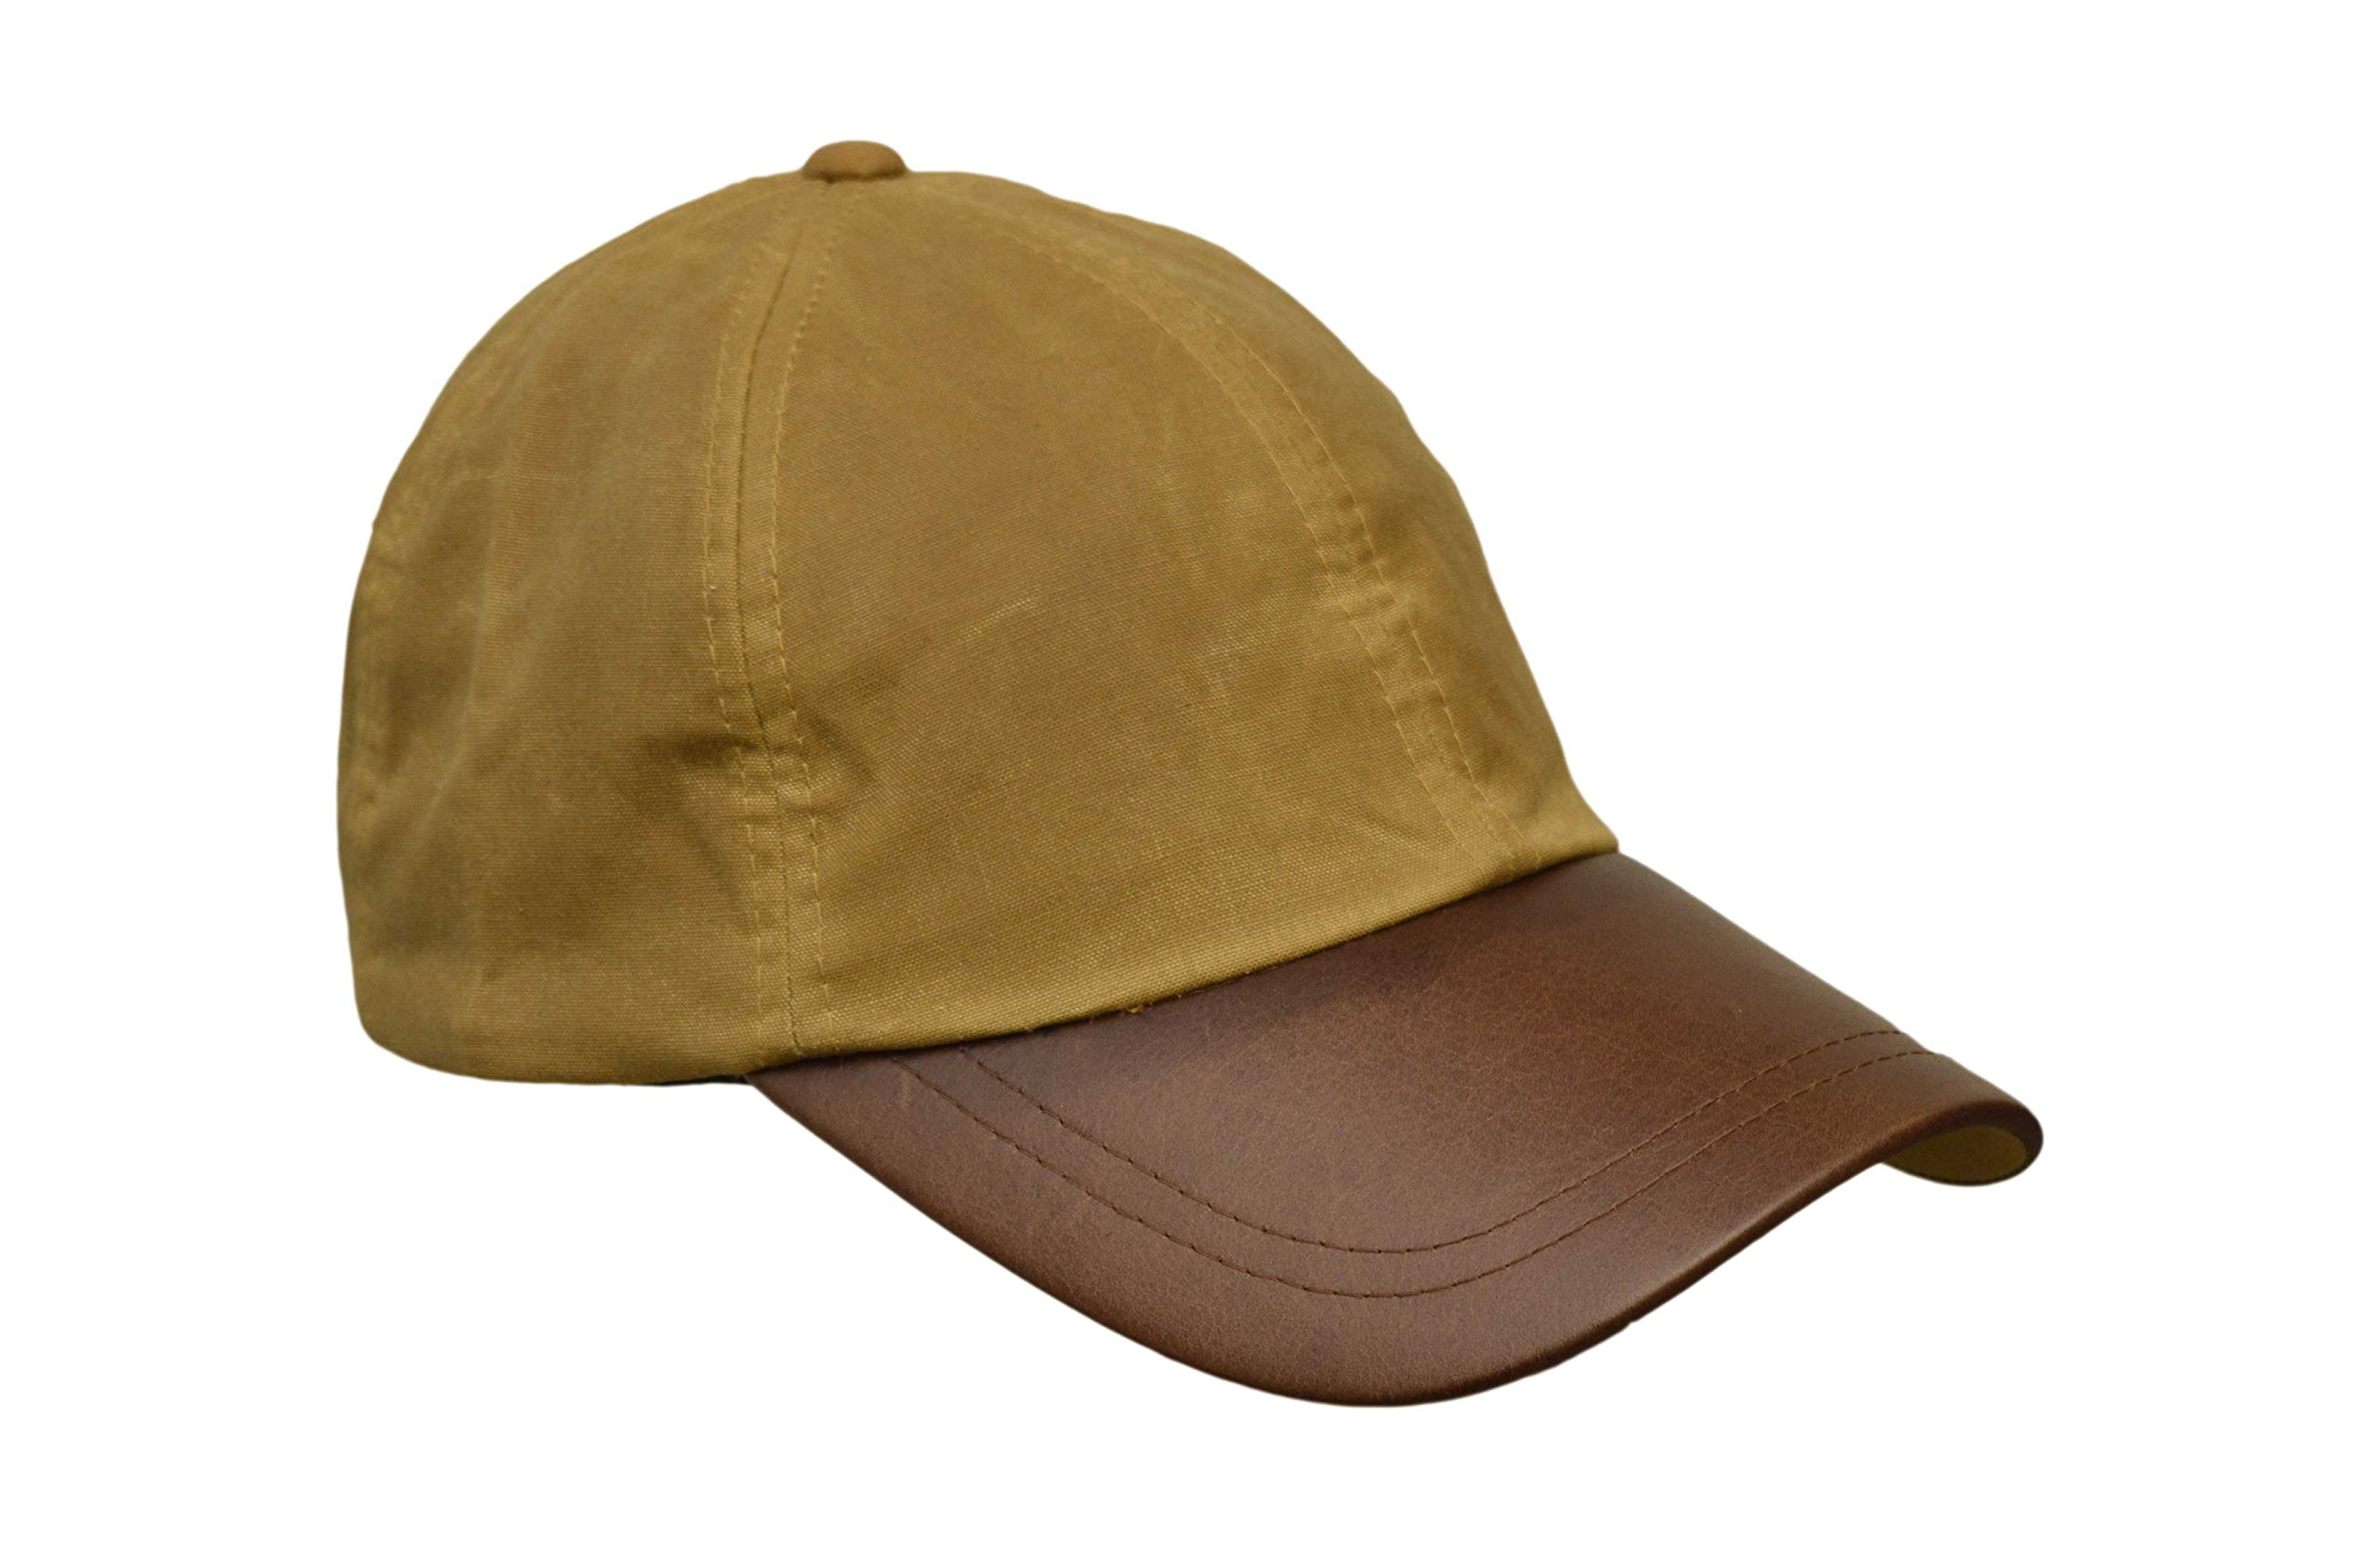 Walker and Hawkes Men's Wax Baseball Cap Waxed Cotton Leather Peak One-Size Beige by Walker and Hawkes